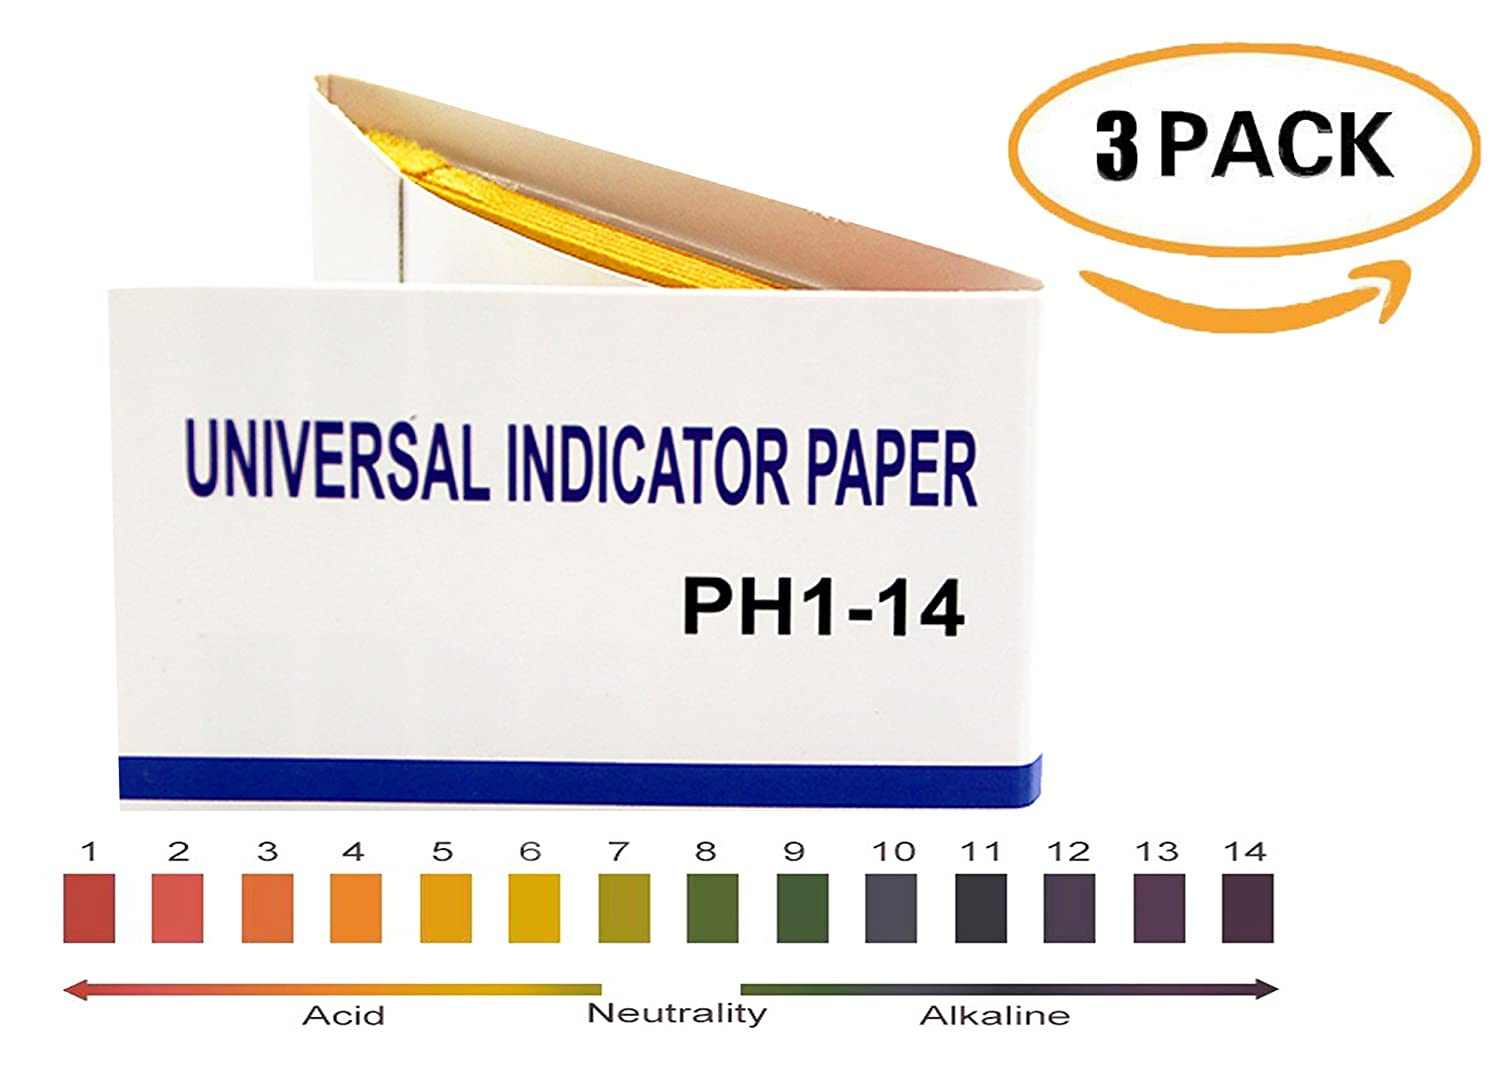 Anonex ph 1 14 test paper ph universal indicator paper for anonex ph 1 14 test paper ph universal indicator paper for testing water qualitysoilurinesalivacosmetics 80 per pack3 pack amazon industrial nvjuhfo Choice Image